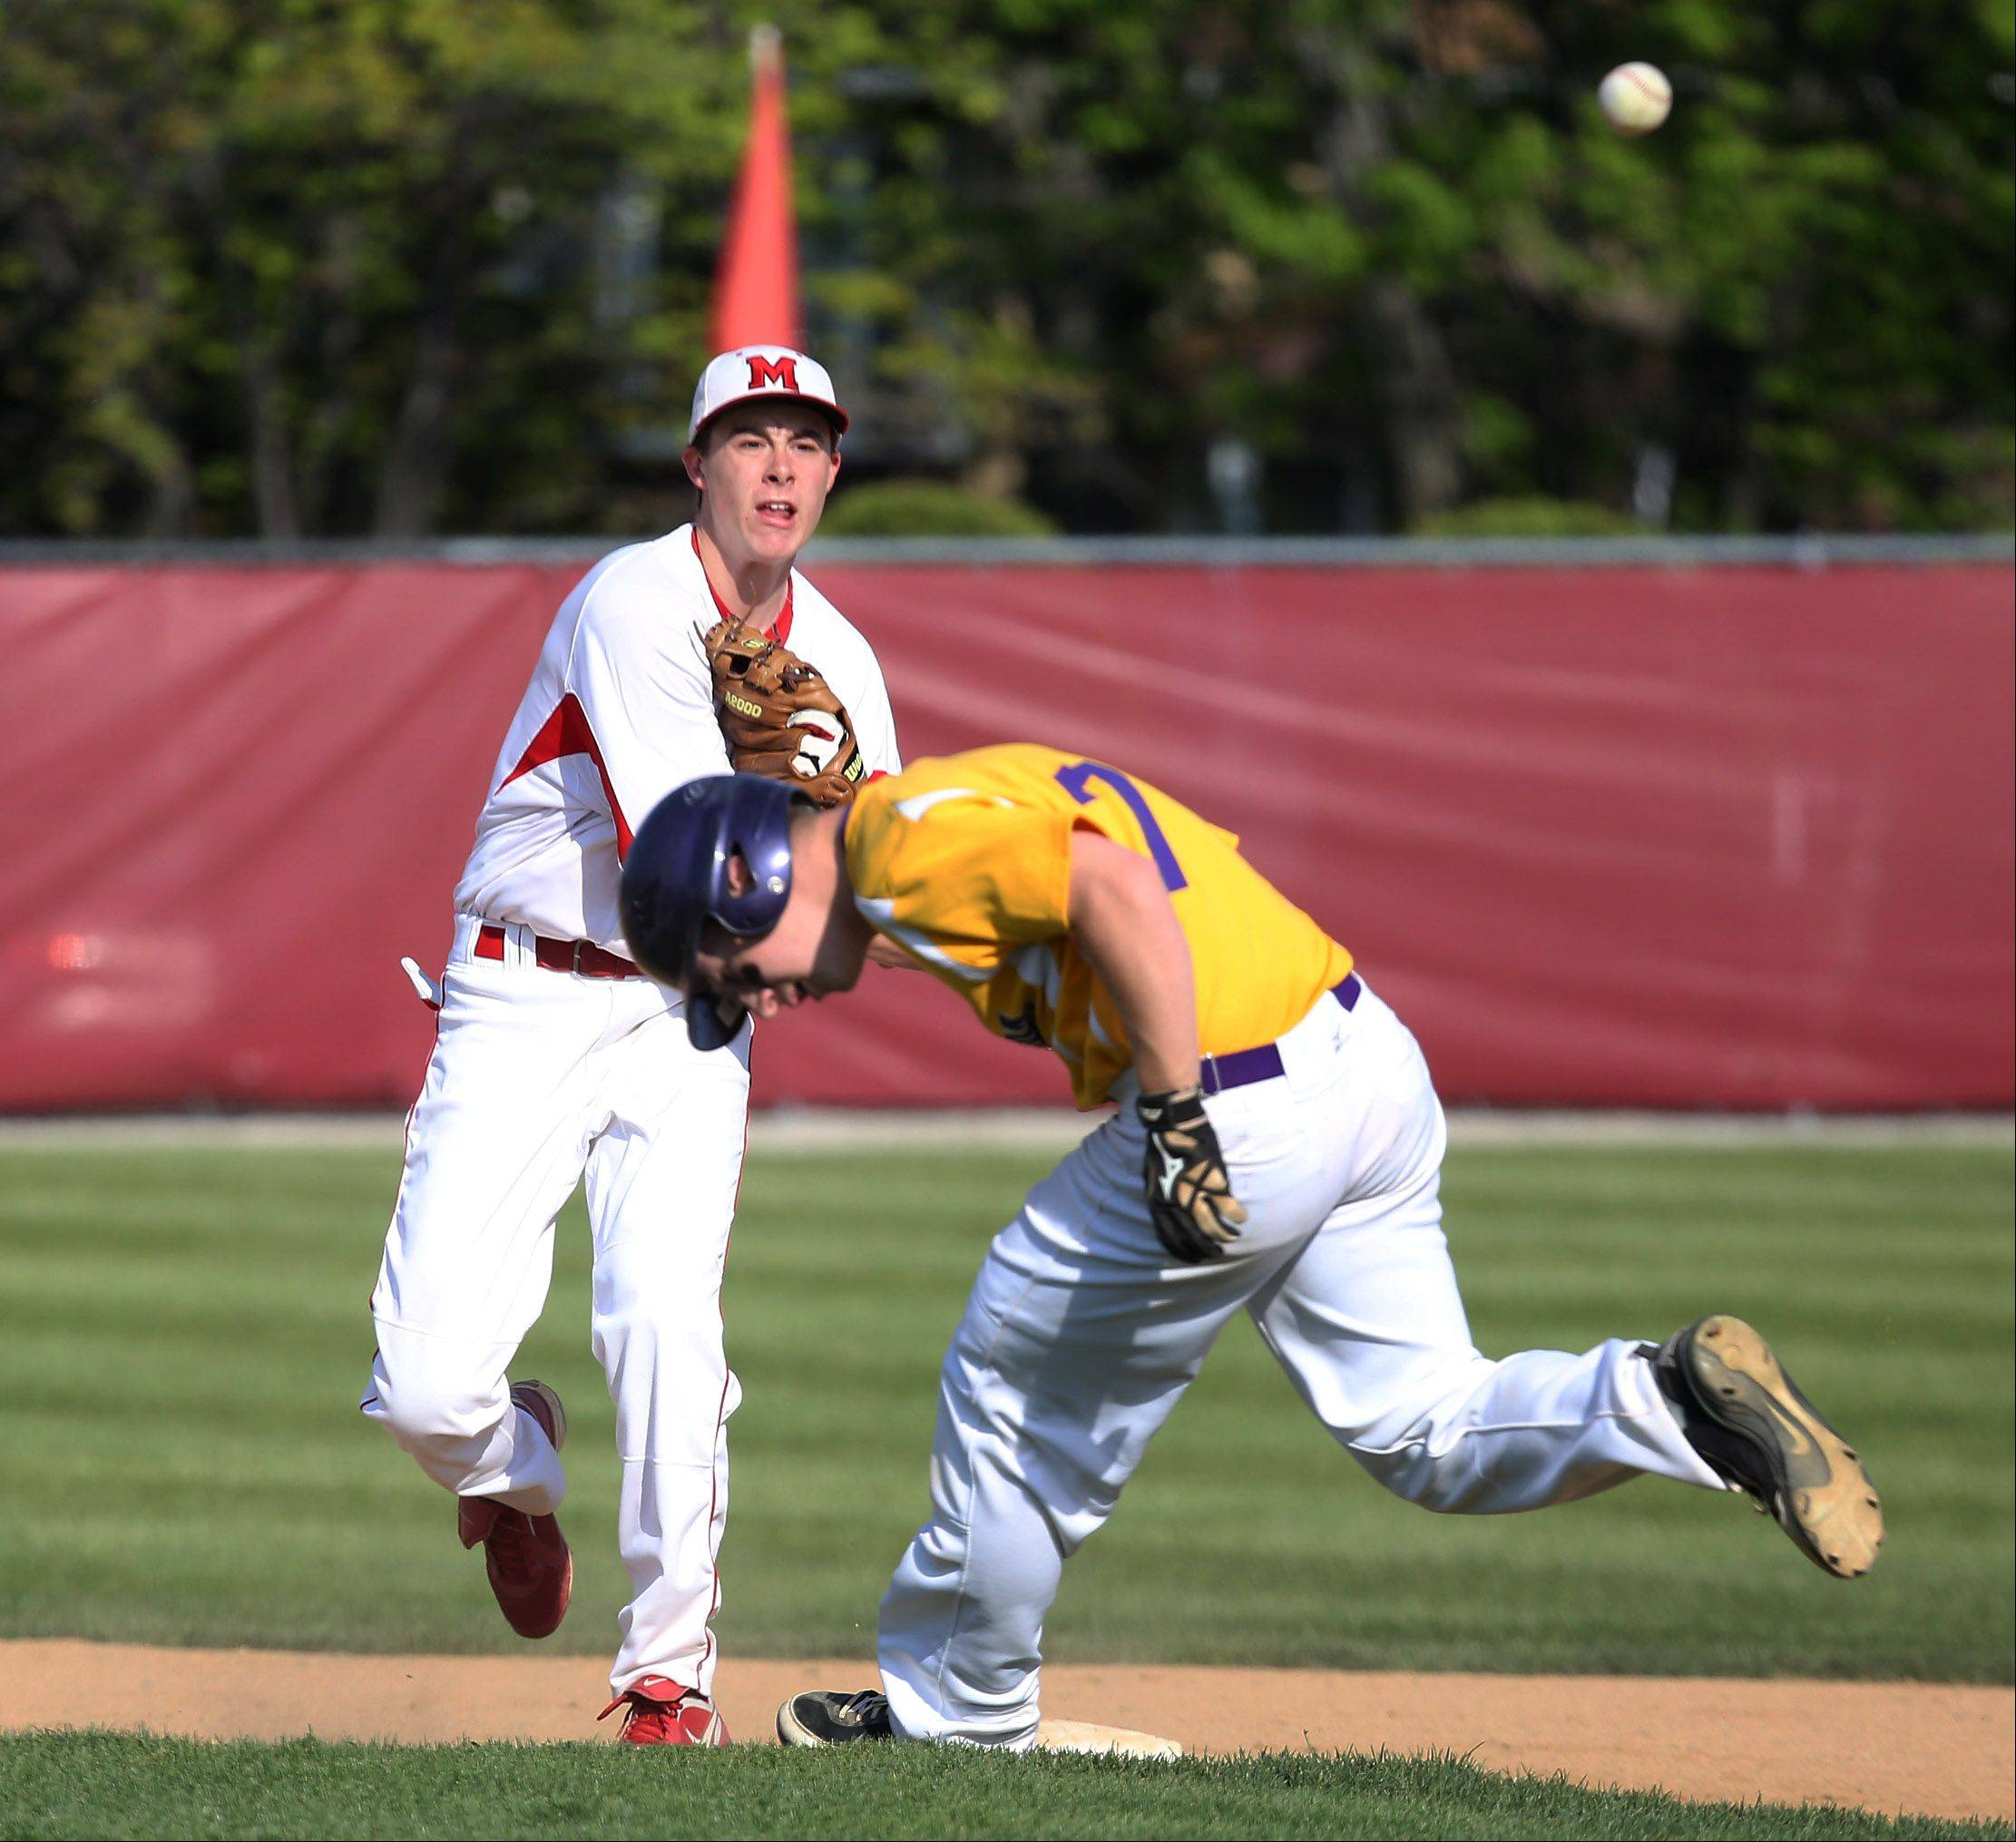 Mundelein infielder Derek Parola turns the double play as Wauconda's Brandon Gibis runs to second base in the fourth inning of the North Suburban Conference championship game Thursday at Mundelein.